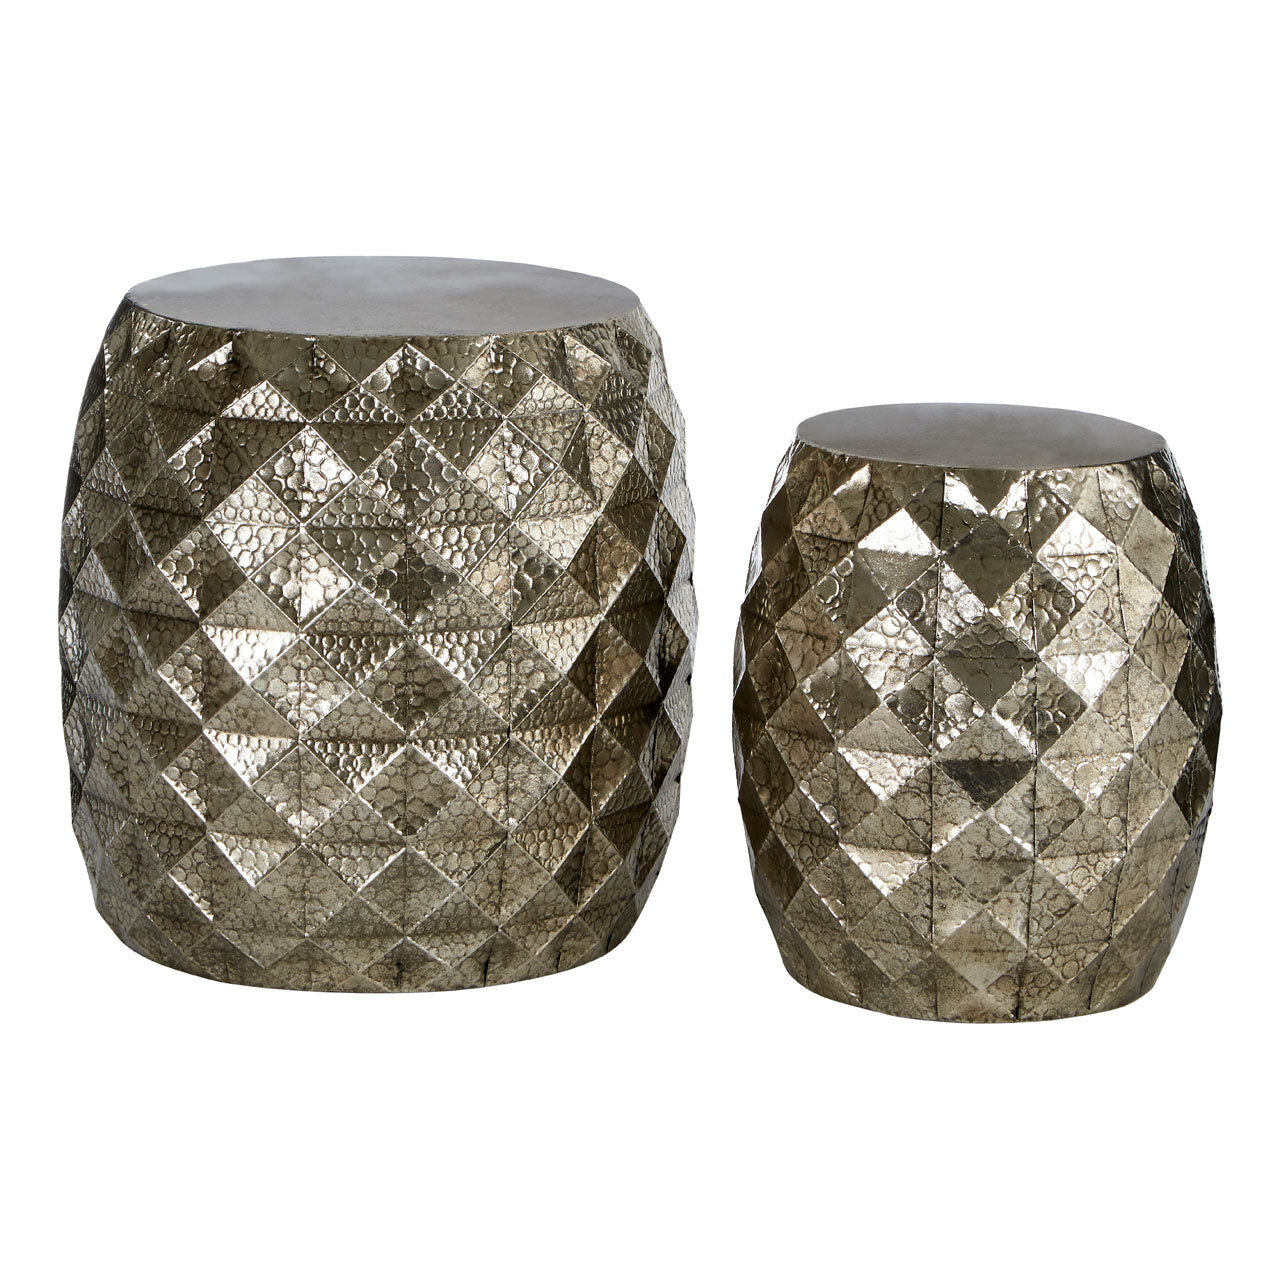 Reza Multi-Faceted Drum Stools in Silver